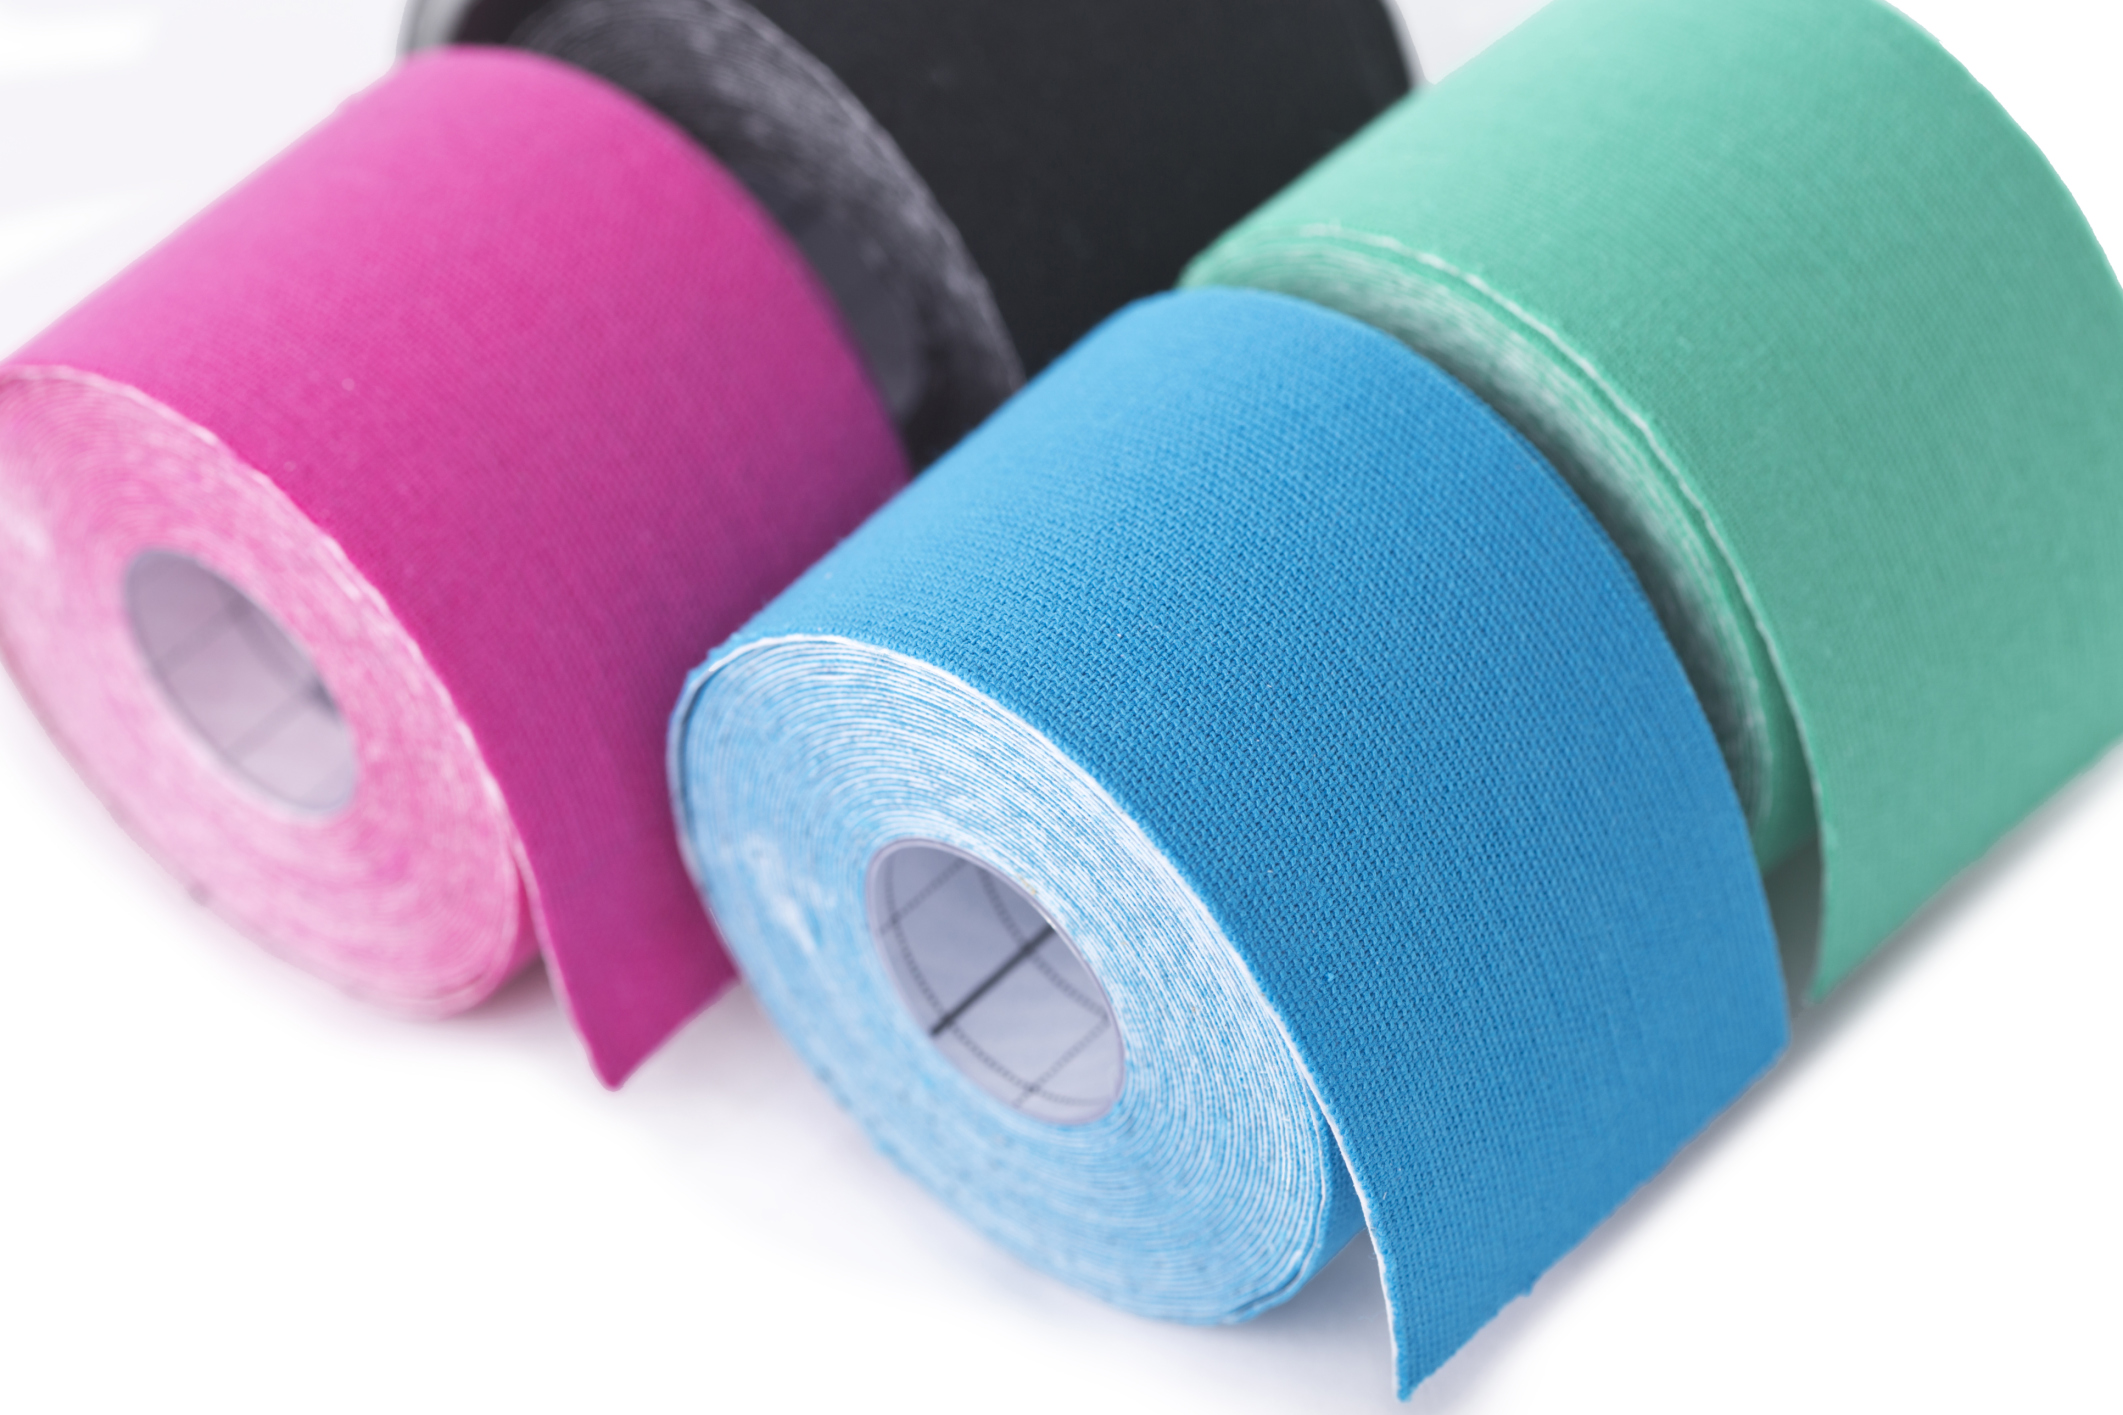 mats ttape strong mat and alpine tape ultra tenacious aid repair leisure products comp ga gear red